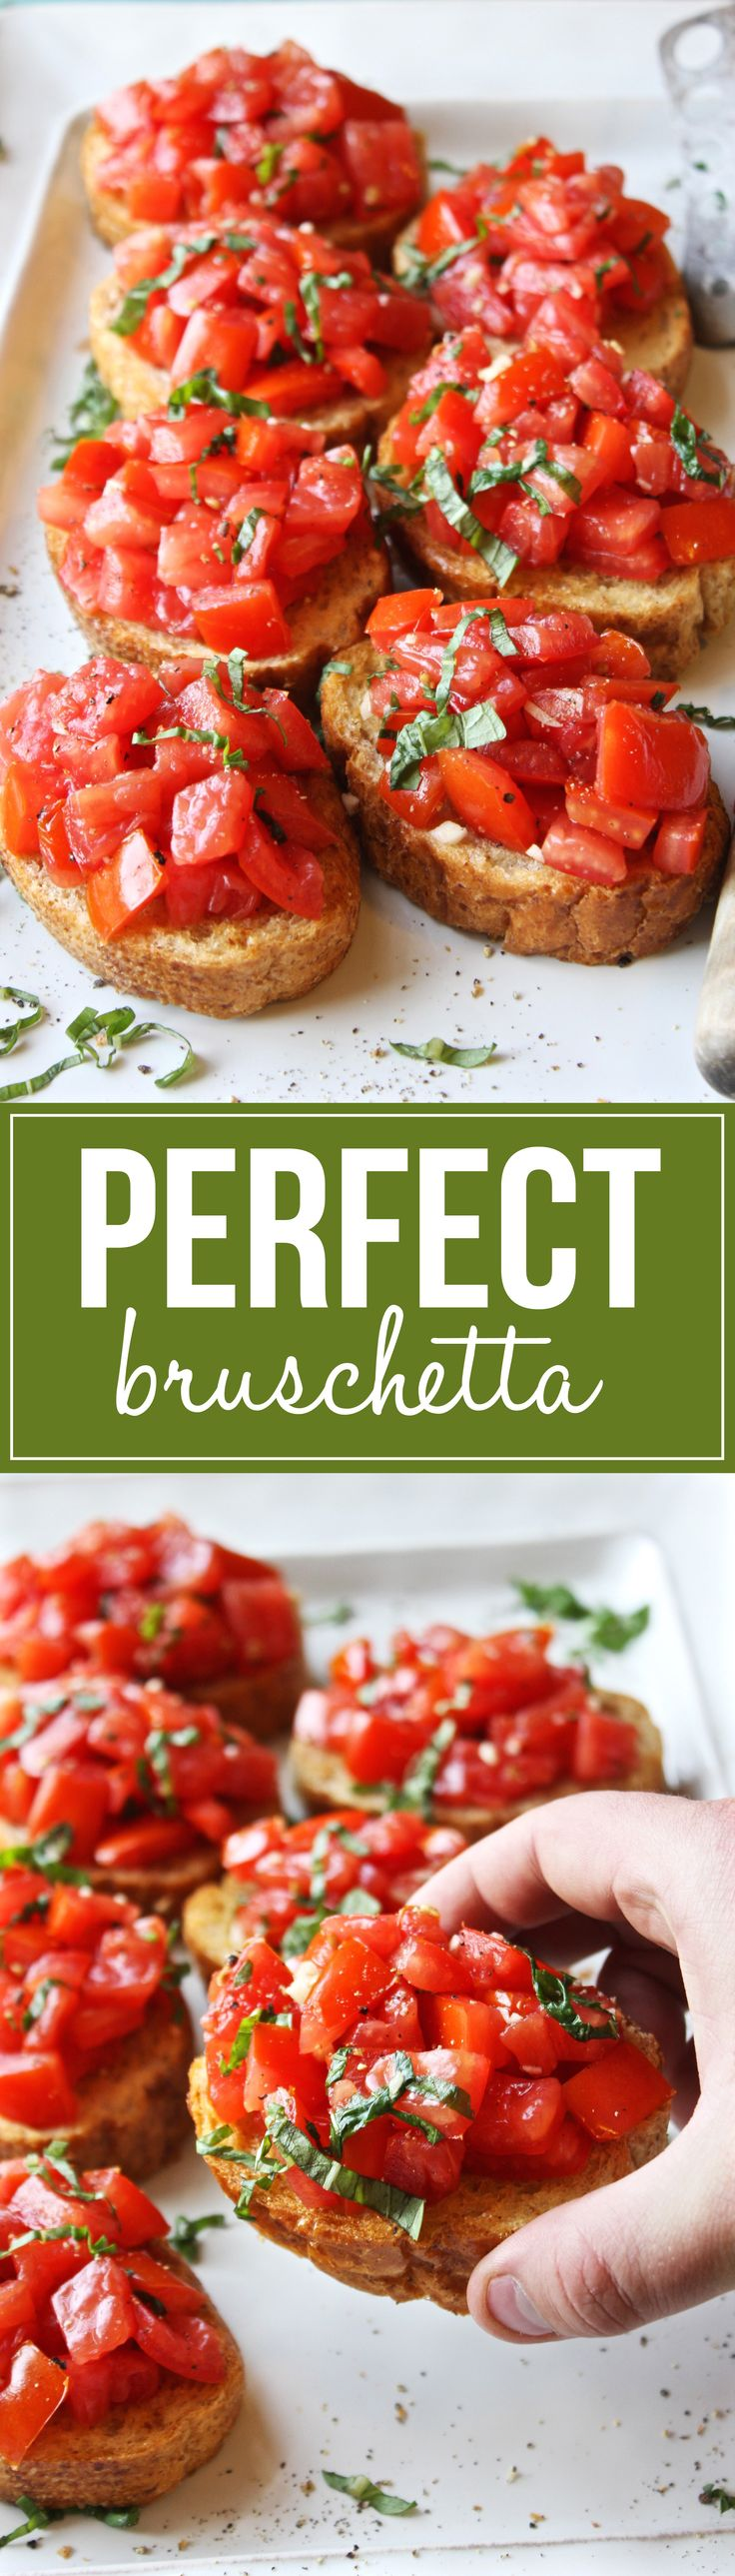 The Perfect Bruschetta.